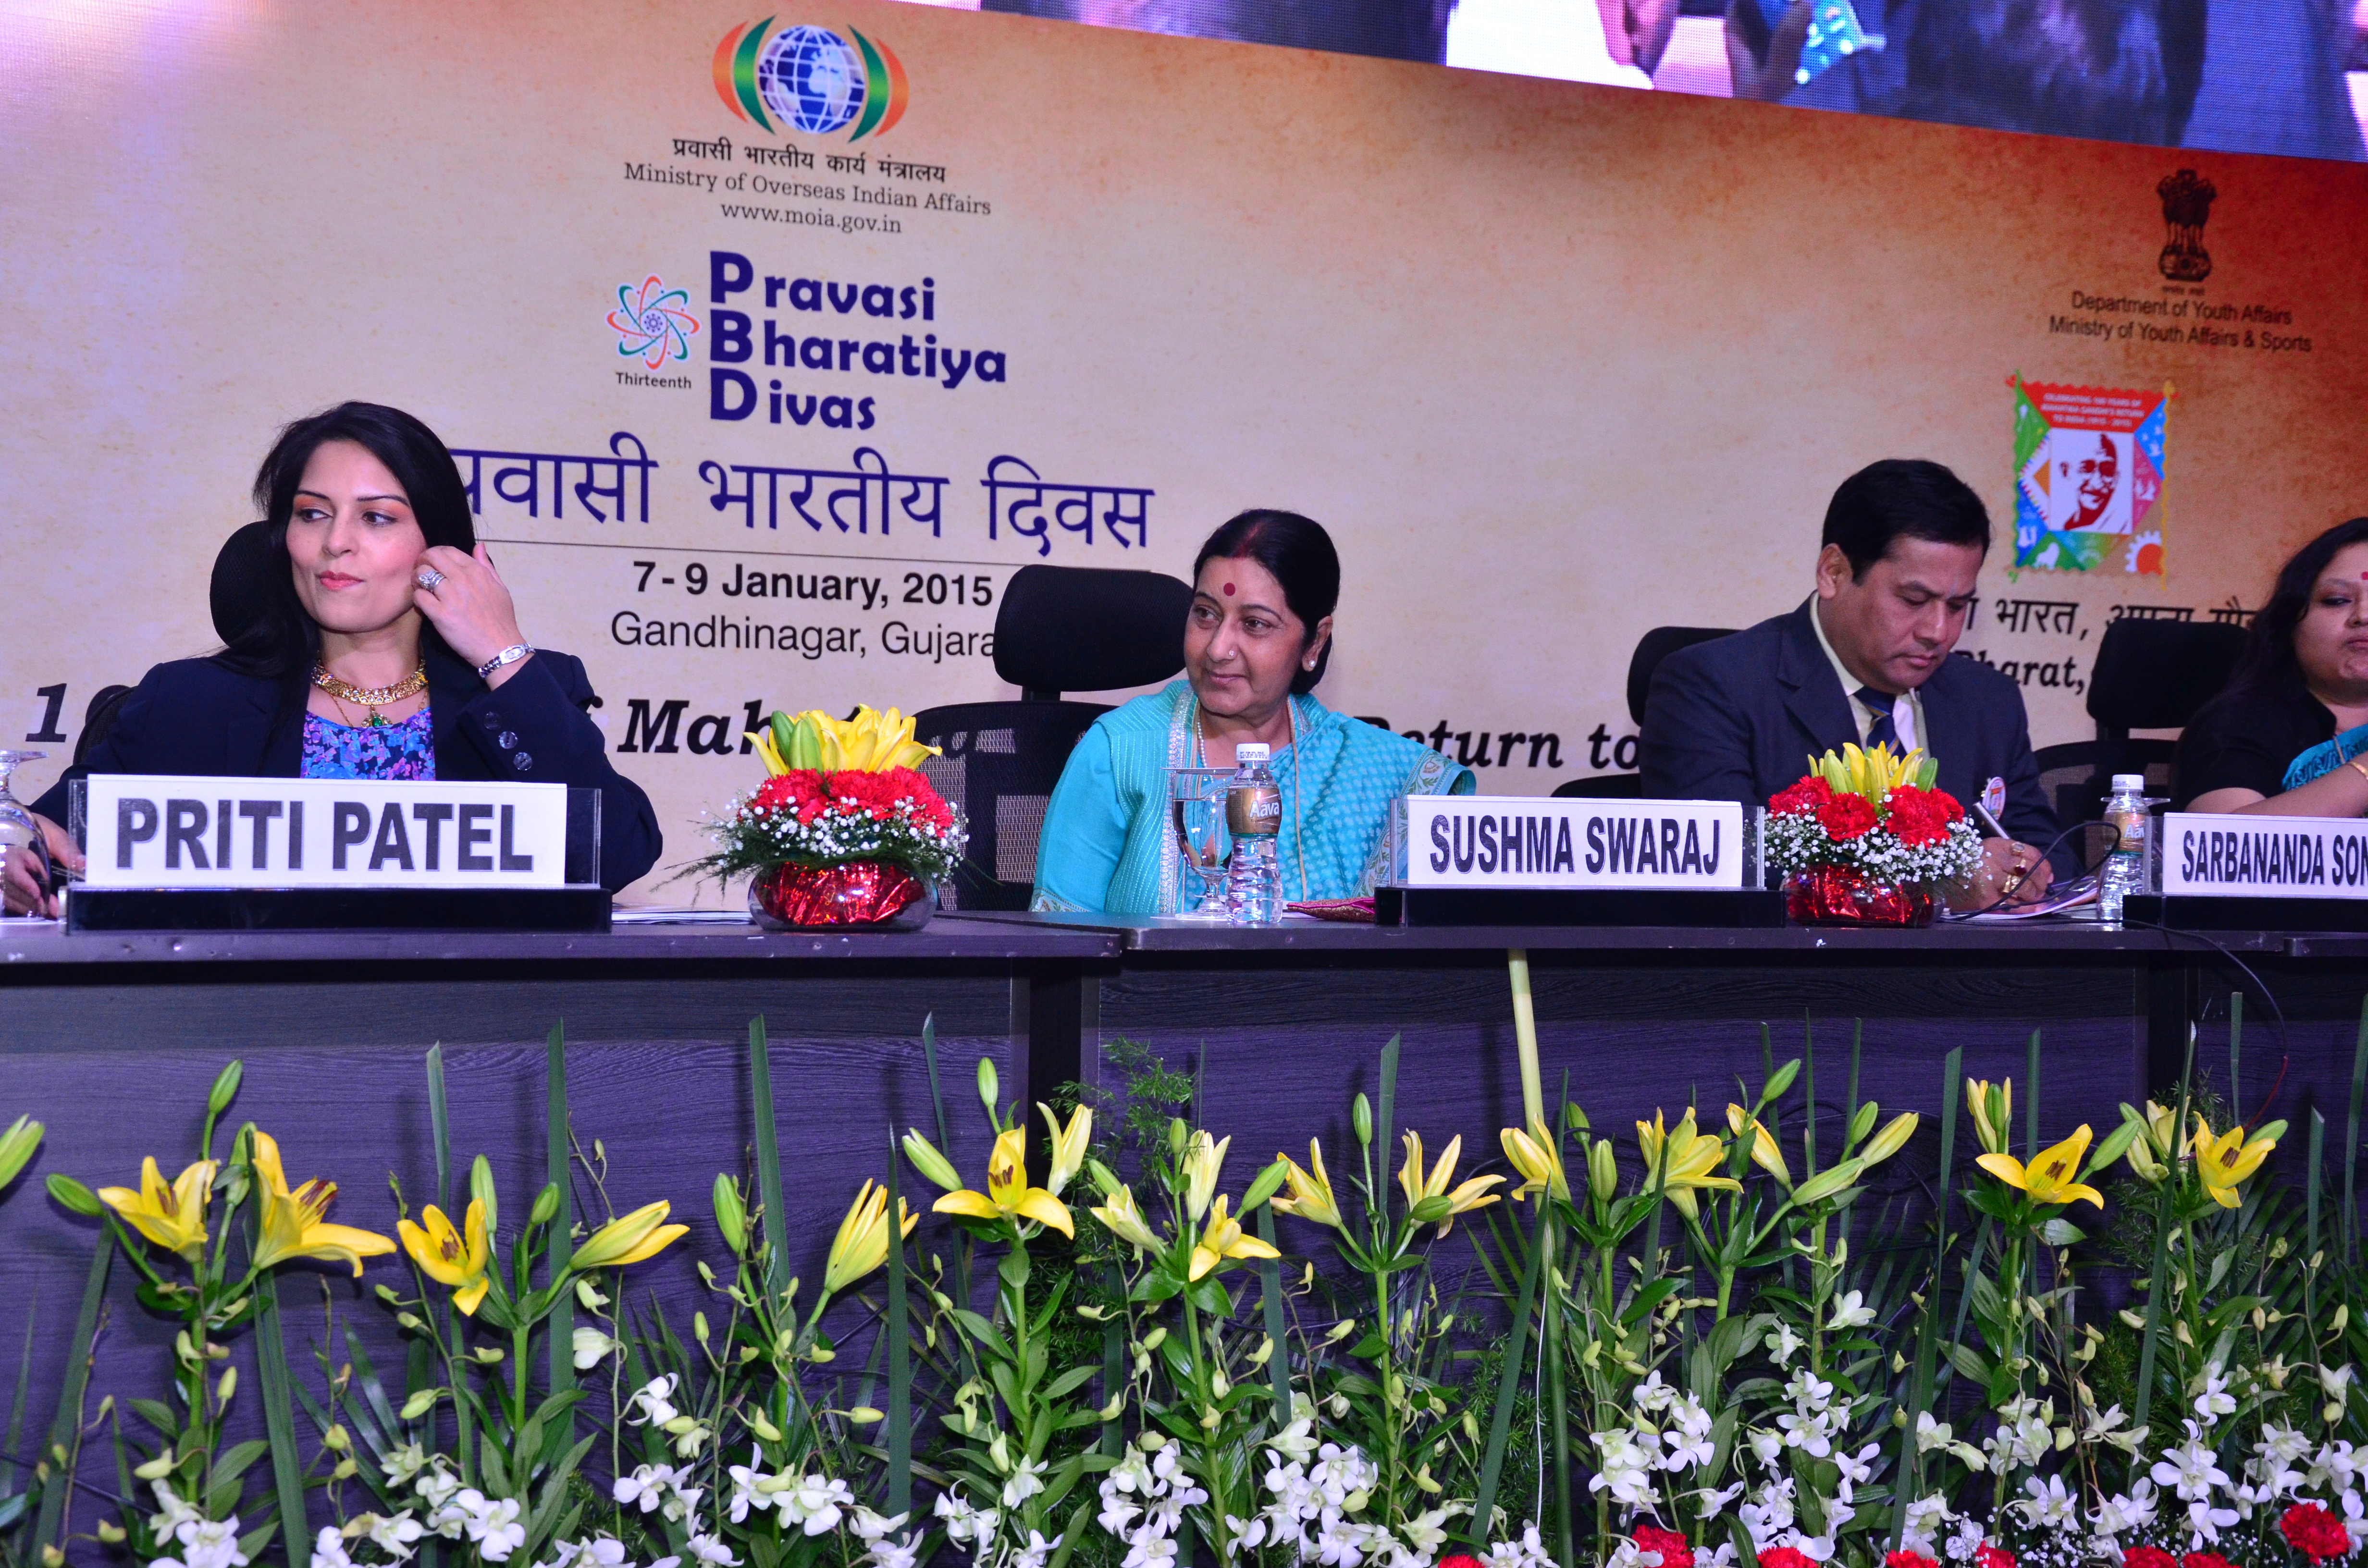 EAM at 13th PBD convention at Gandhi Nagar, Gujarat